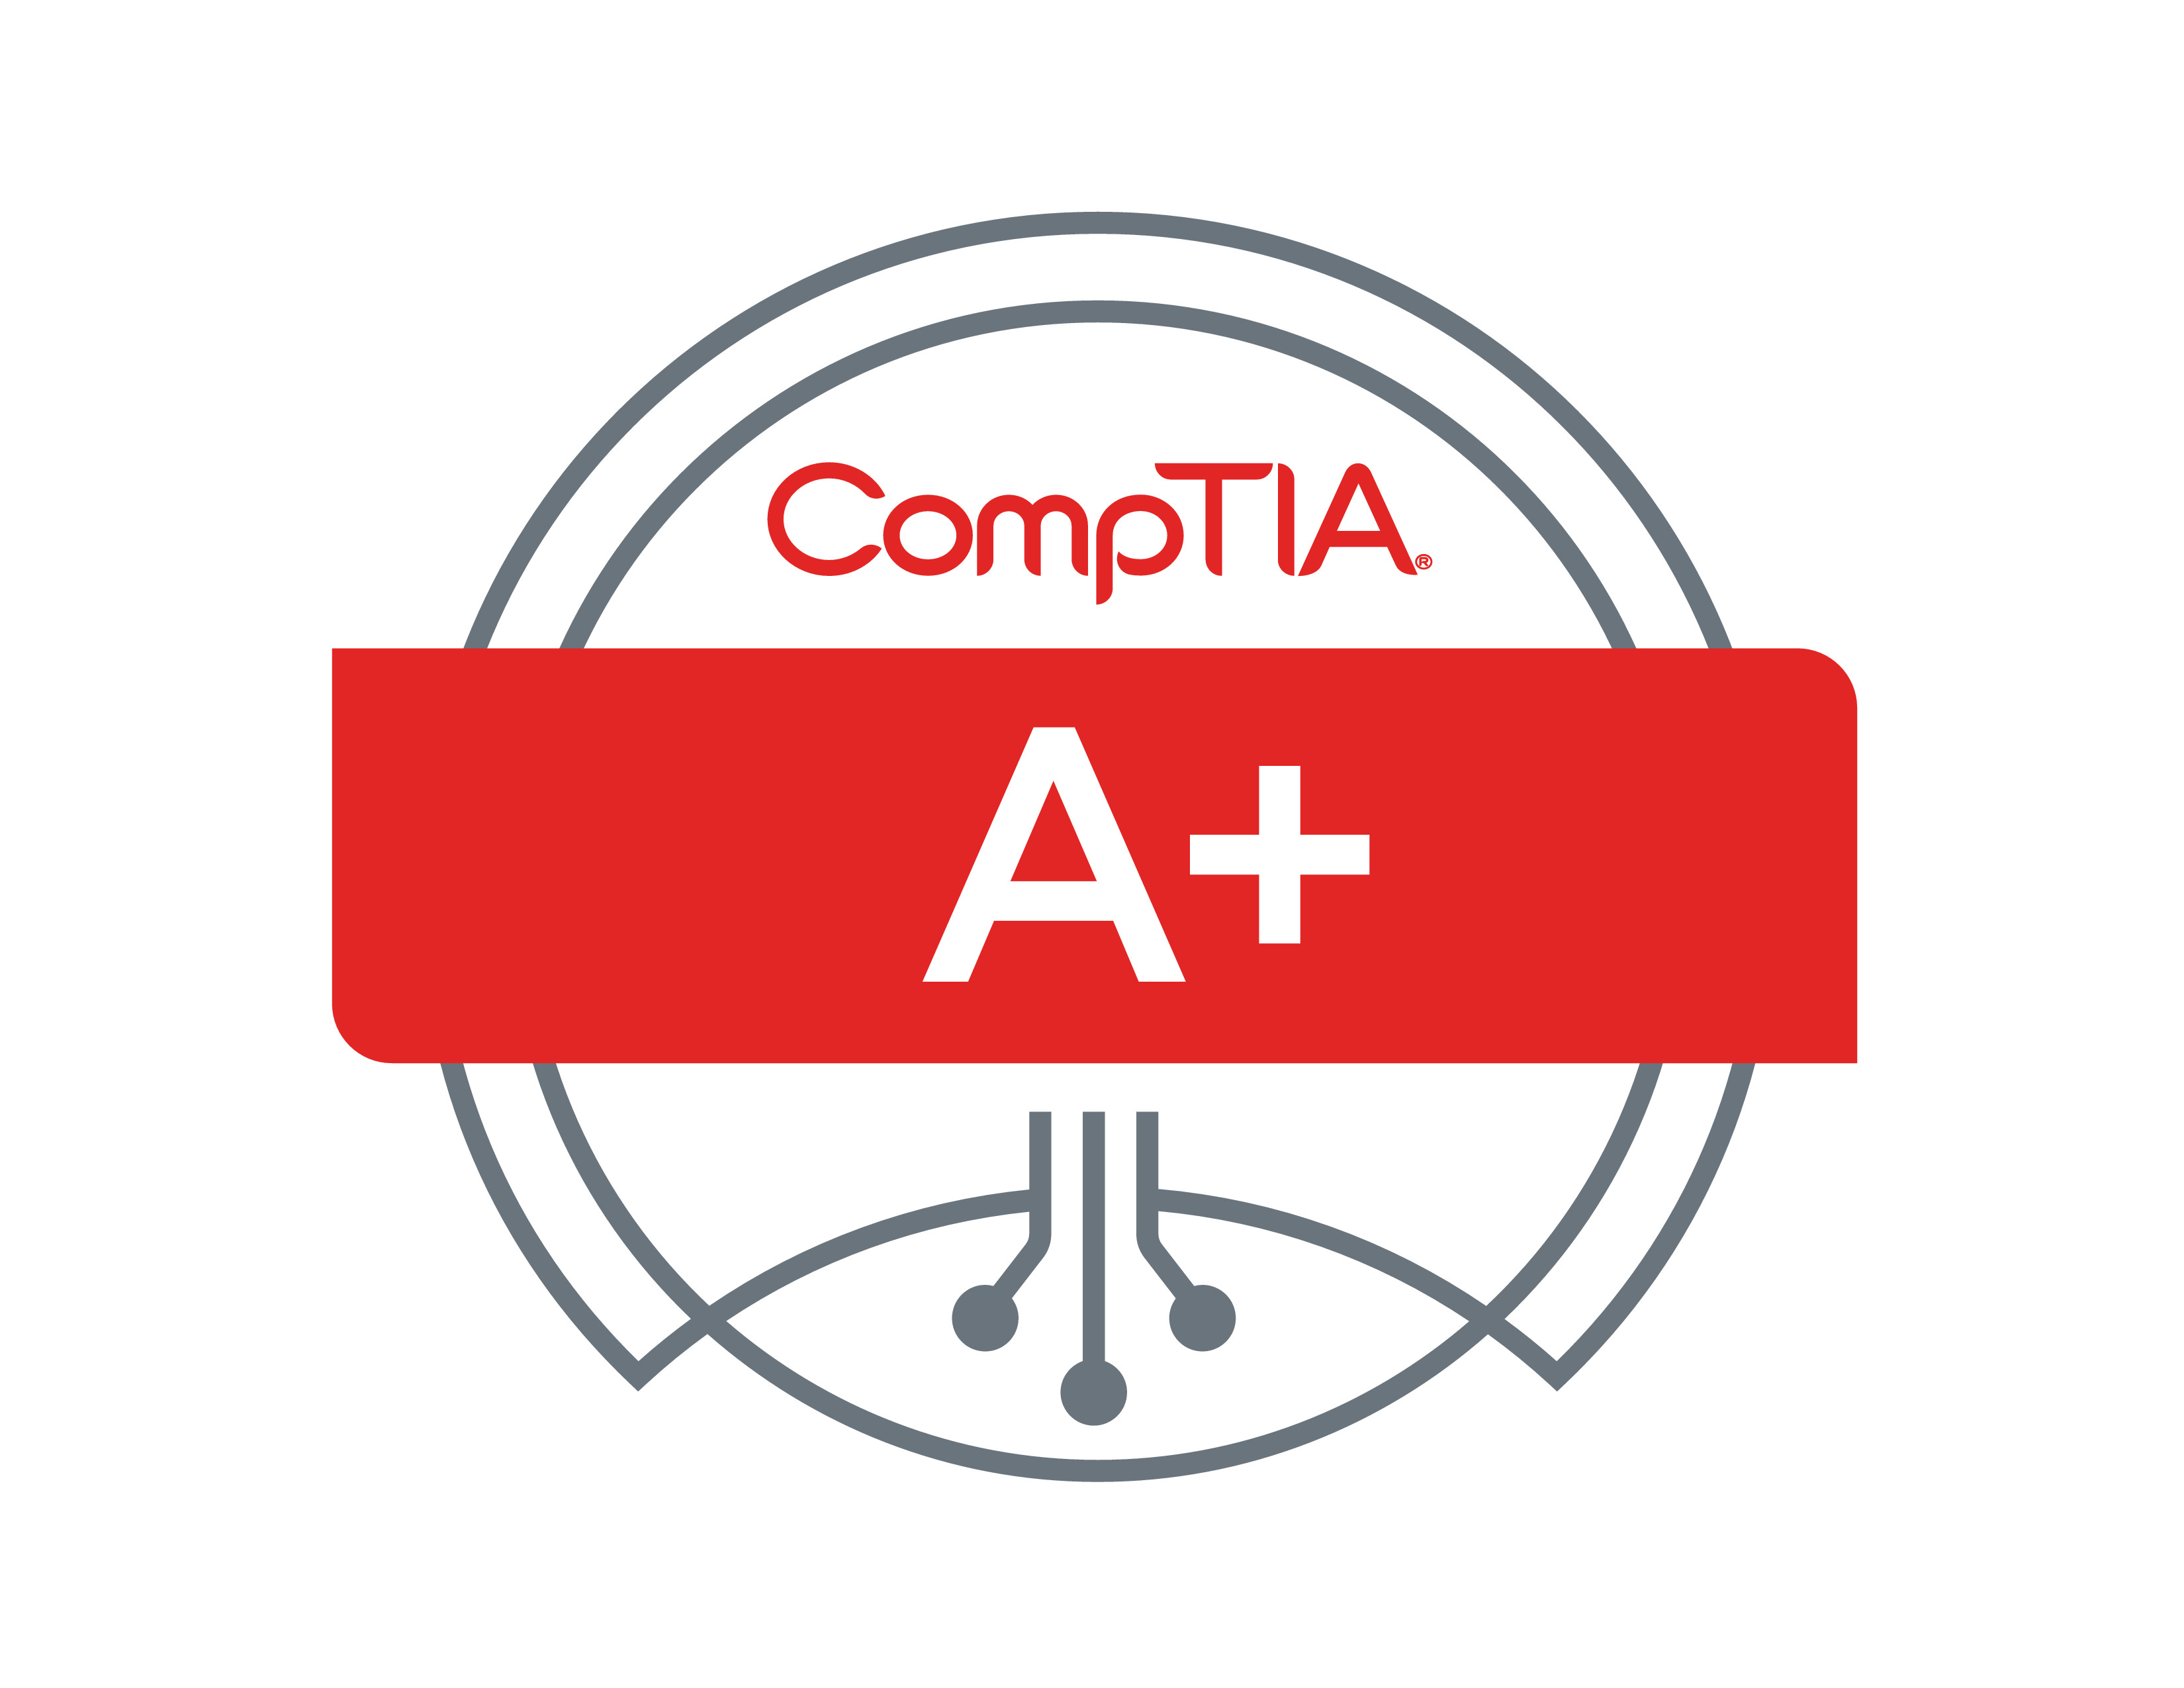 CompTIA Better Bundle Includes CompTIA Security+ Exam Voucher, CompTIA CertMaster for Security+ & CompTIA Security+ Exam Voucher Retake. Vouchers are only available for Pearson VUE test center in North America. All sales of exam vouchers are final, no exceptions.